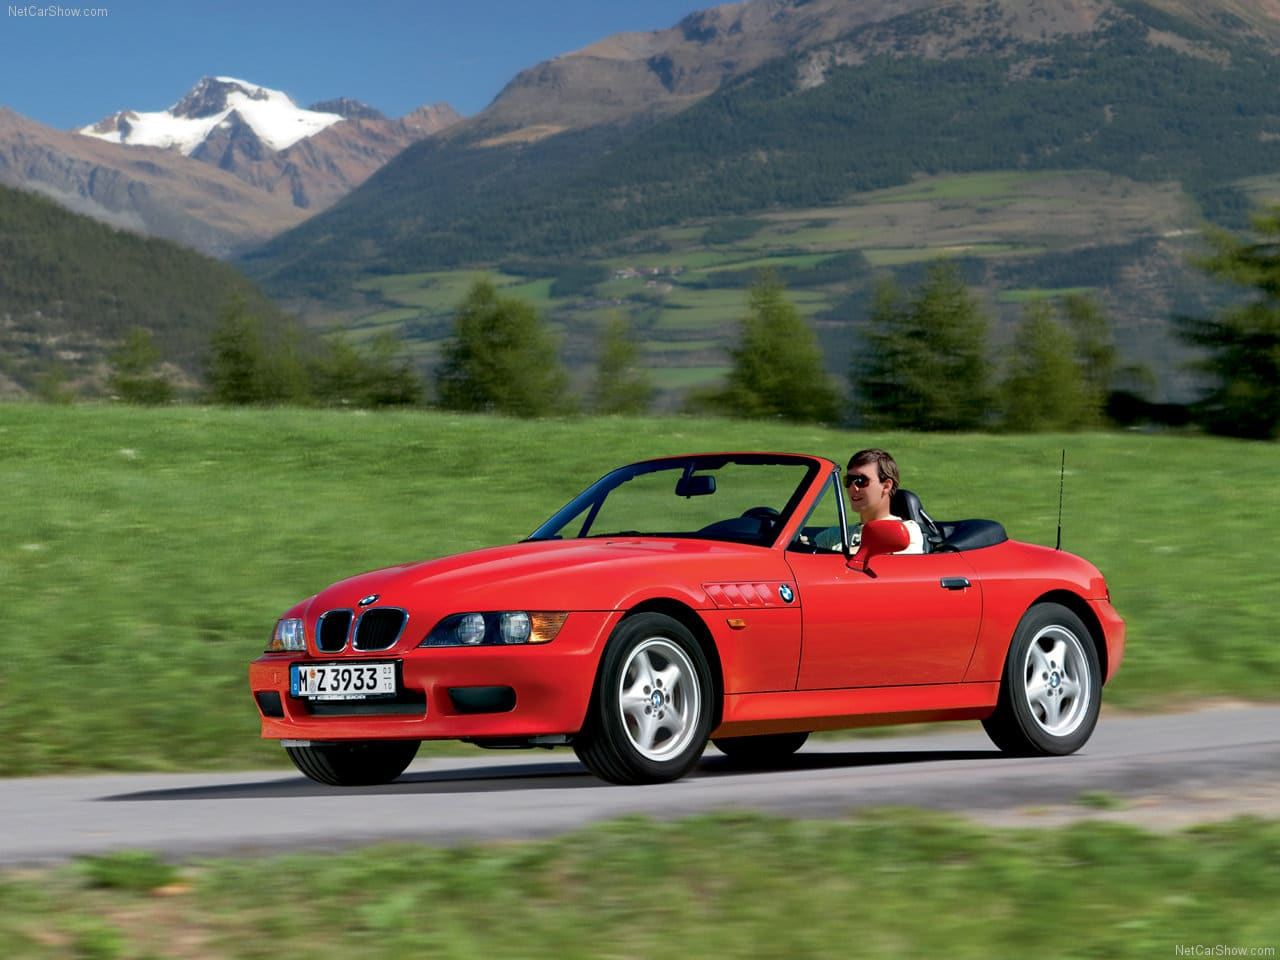 pictures bmw z3. BMW Z3, BMW, Roadster, Two-seater, Convertible, Cabriolet Pictures Bmw Z3